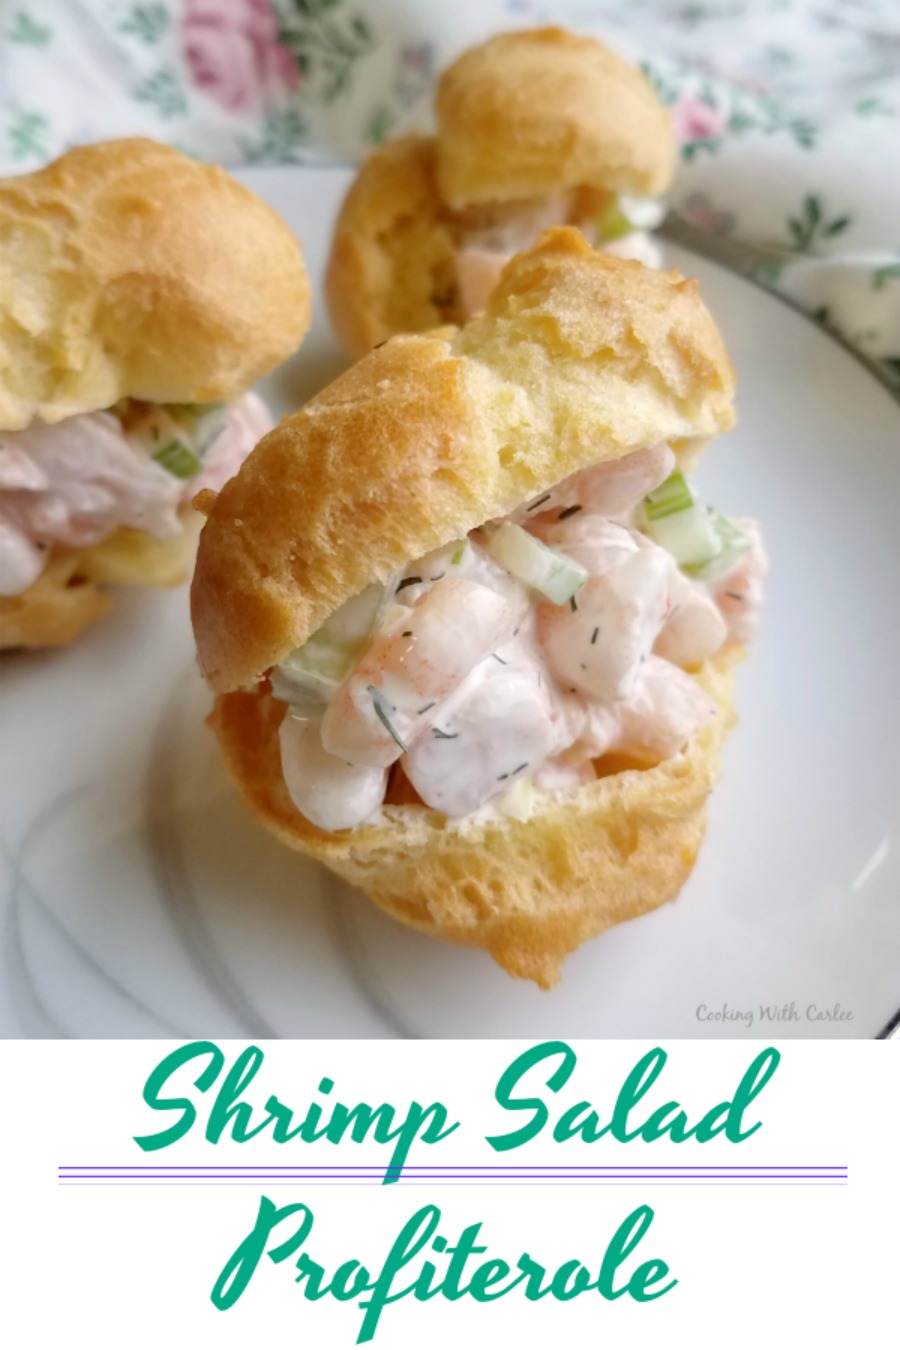 The perfect appetizer is here! A buttery puff shell stuffed with delicious shrimp salad. It's a great starter, fun lunch and would be perfect served at a baby or wedding shower!